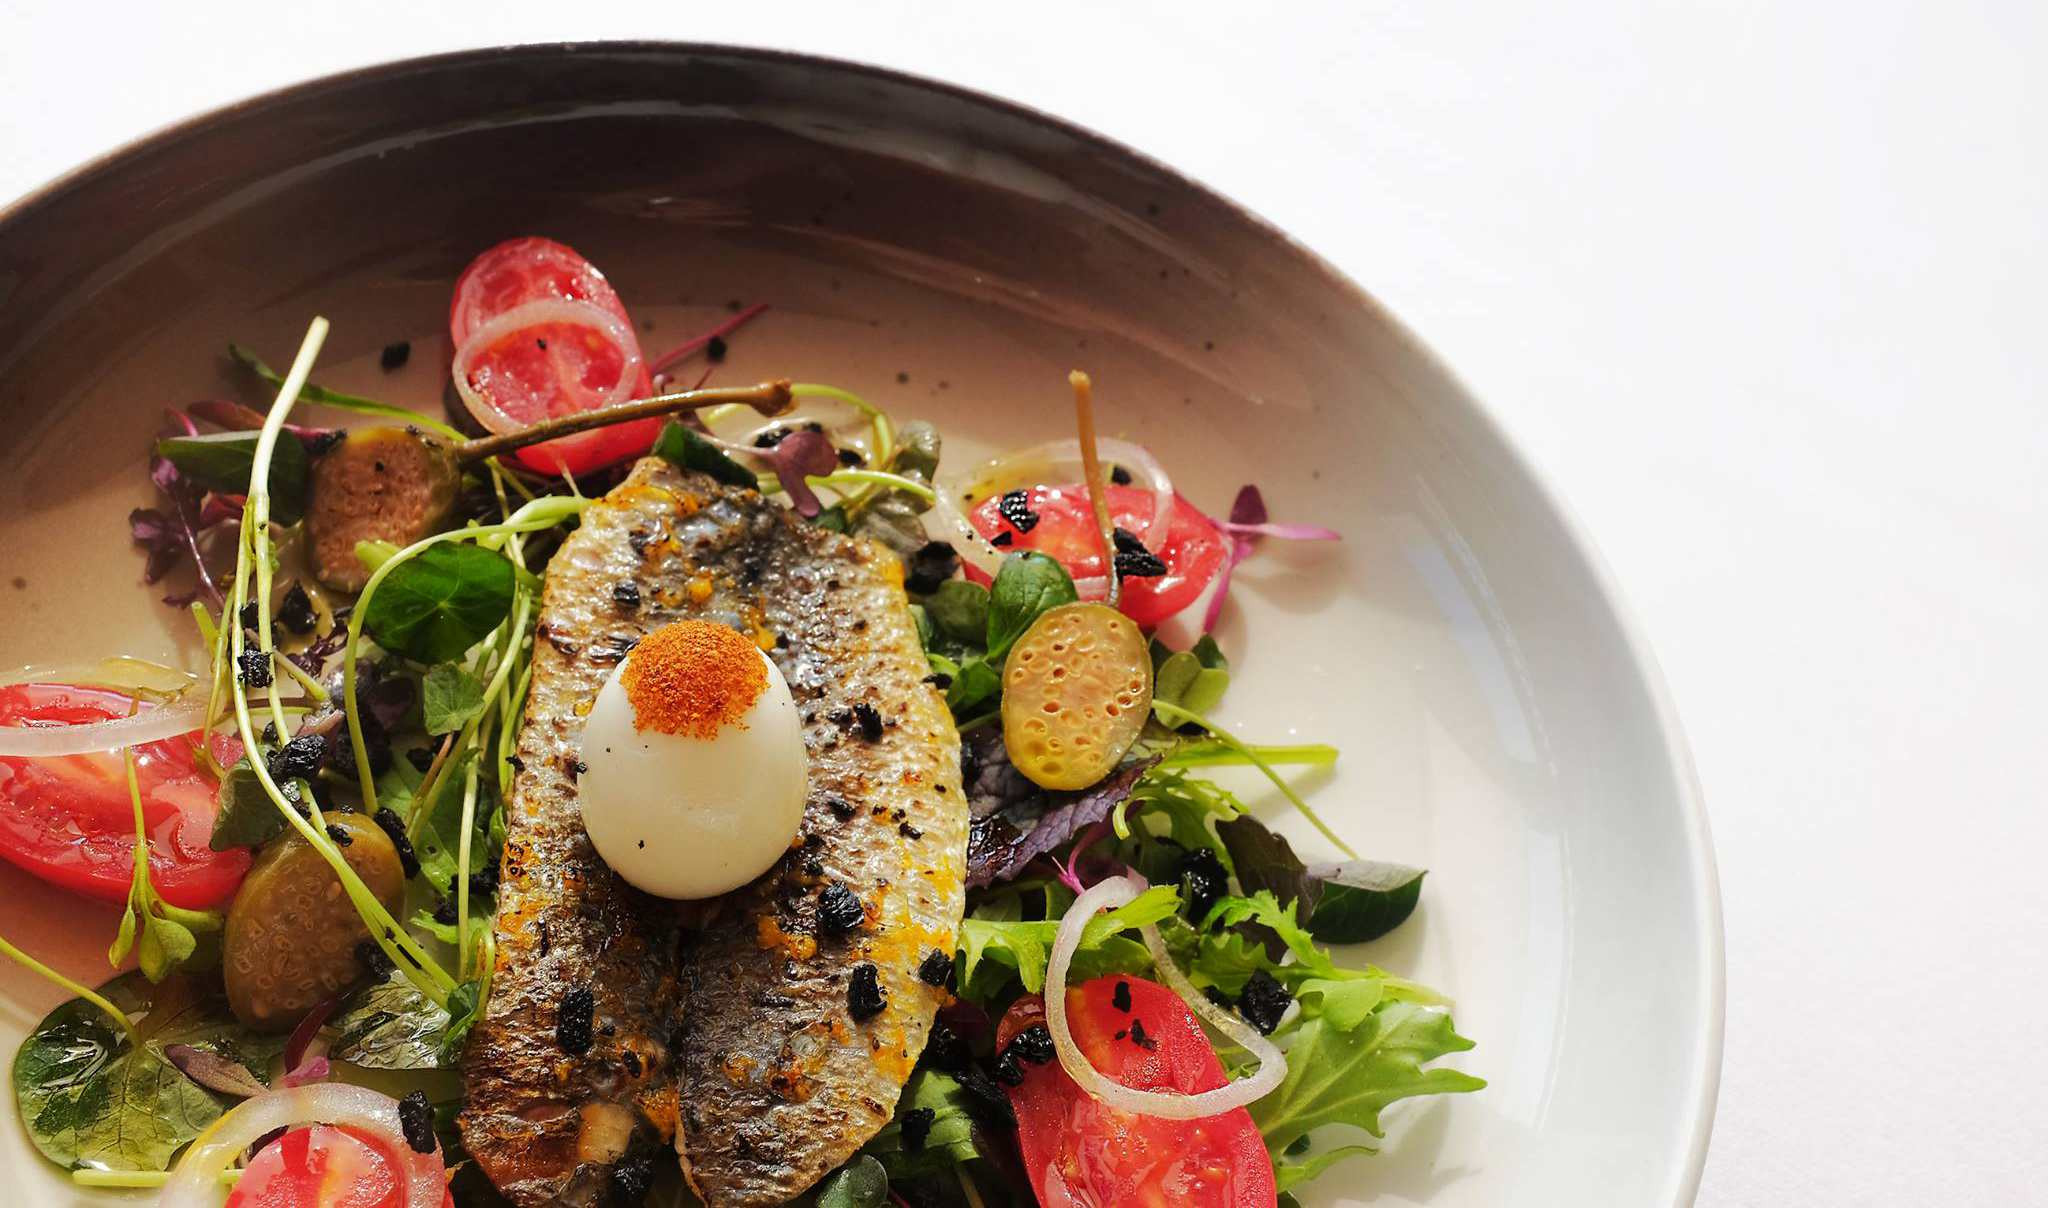 French Glamour: Menu Degustation for Two at Galvin at Windows